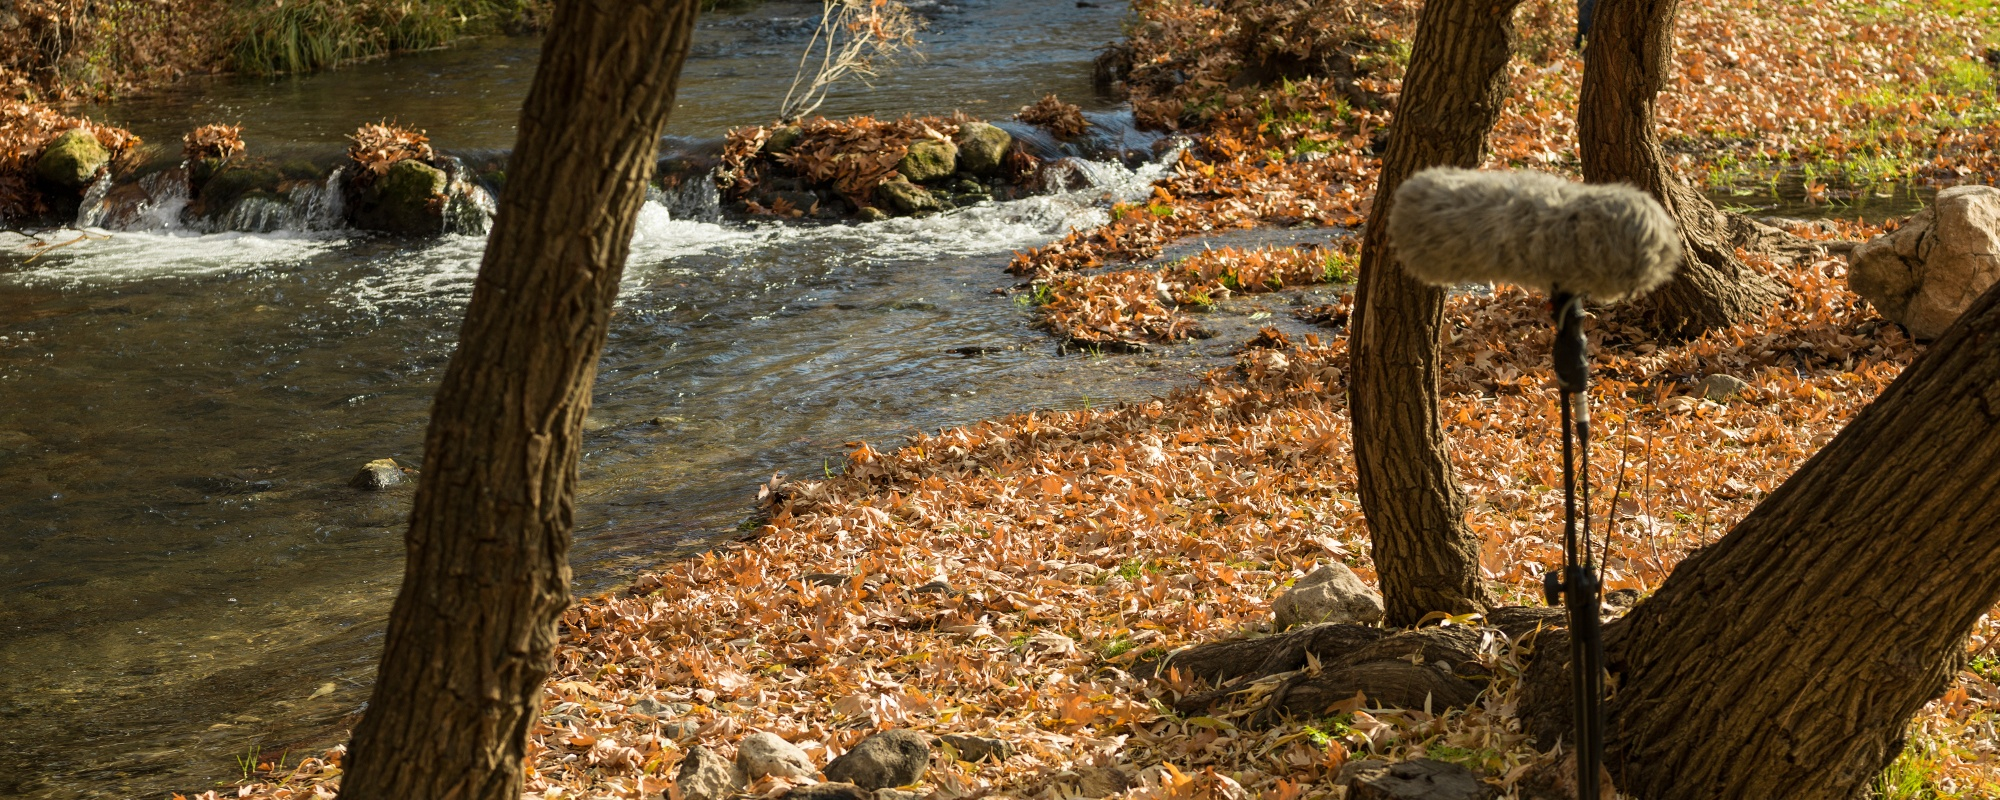 Boom microphone equipment recording location sound of flowing stream in nature